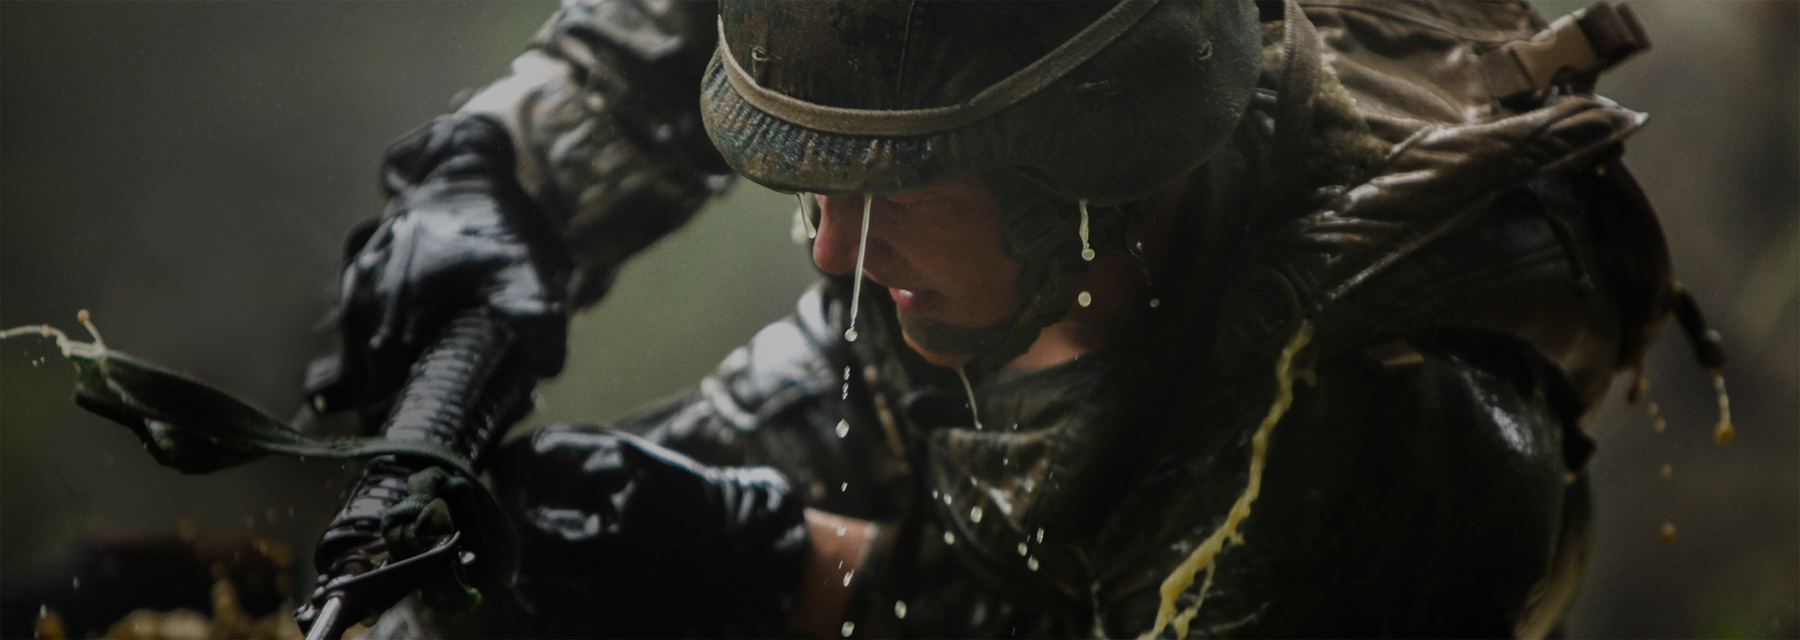 A Marine with eyes closed, water dripping from his helmet and soaked cammies pushes on with a rifle in hand.